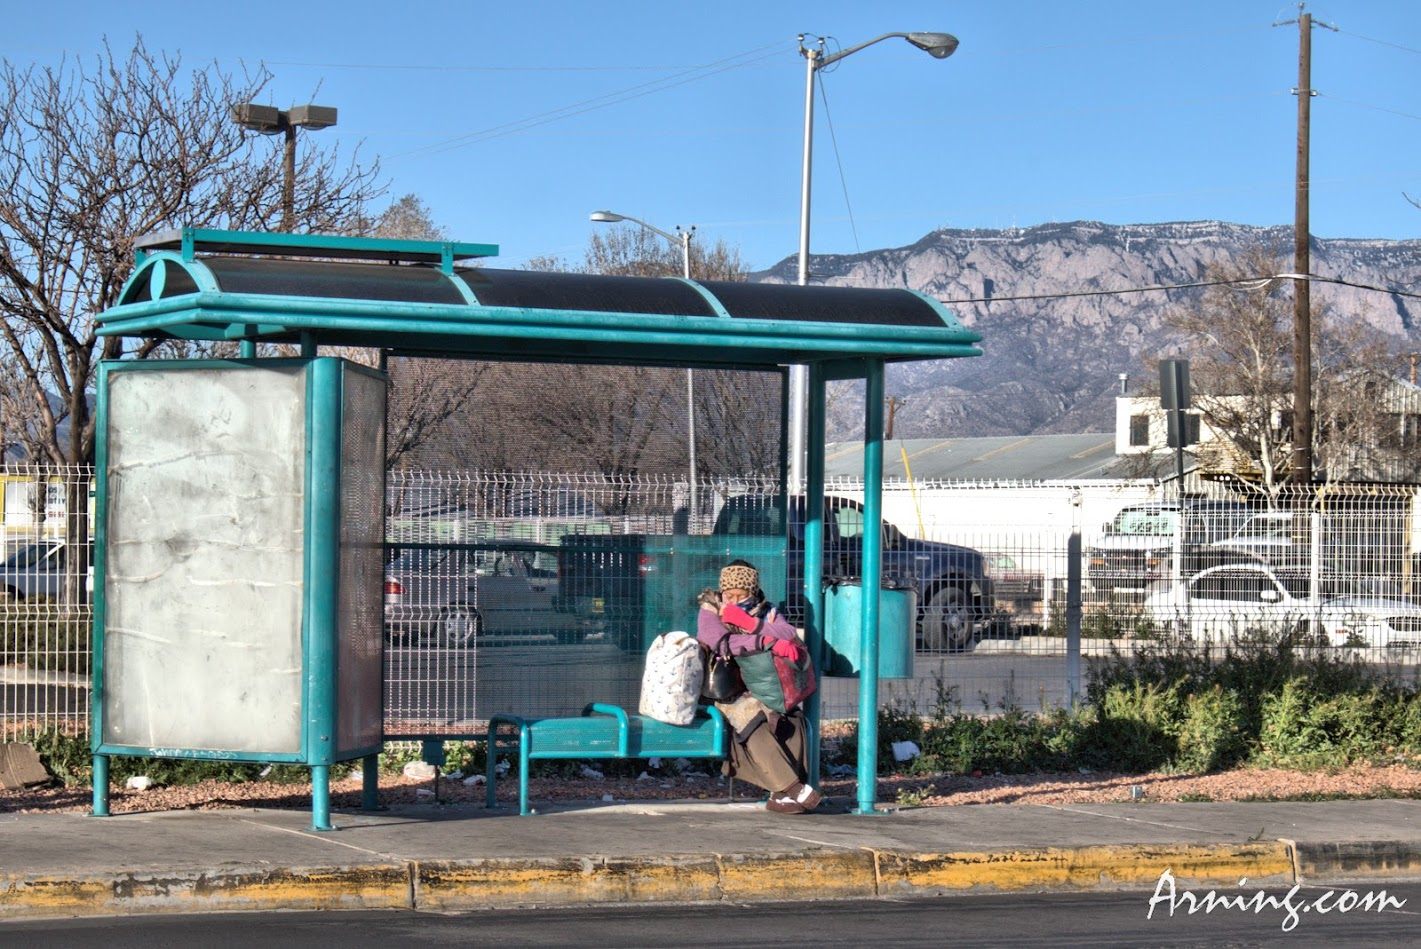 Waiting for a bus